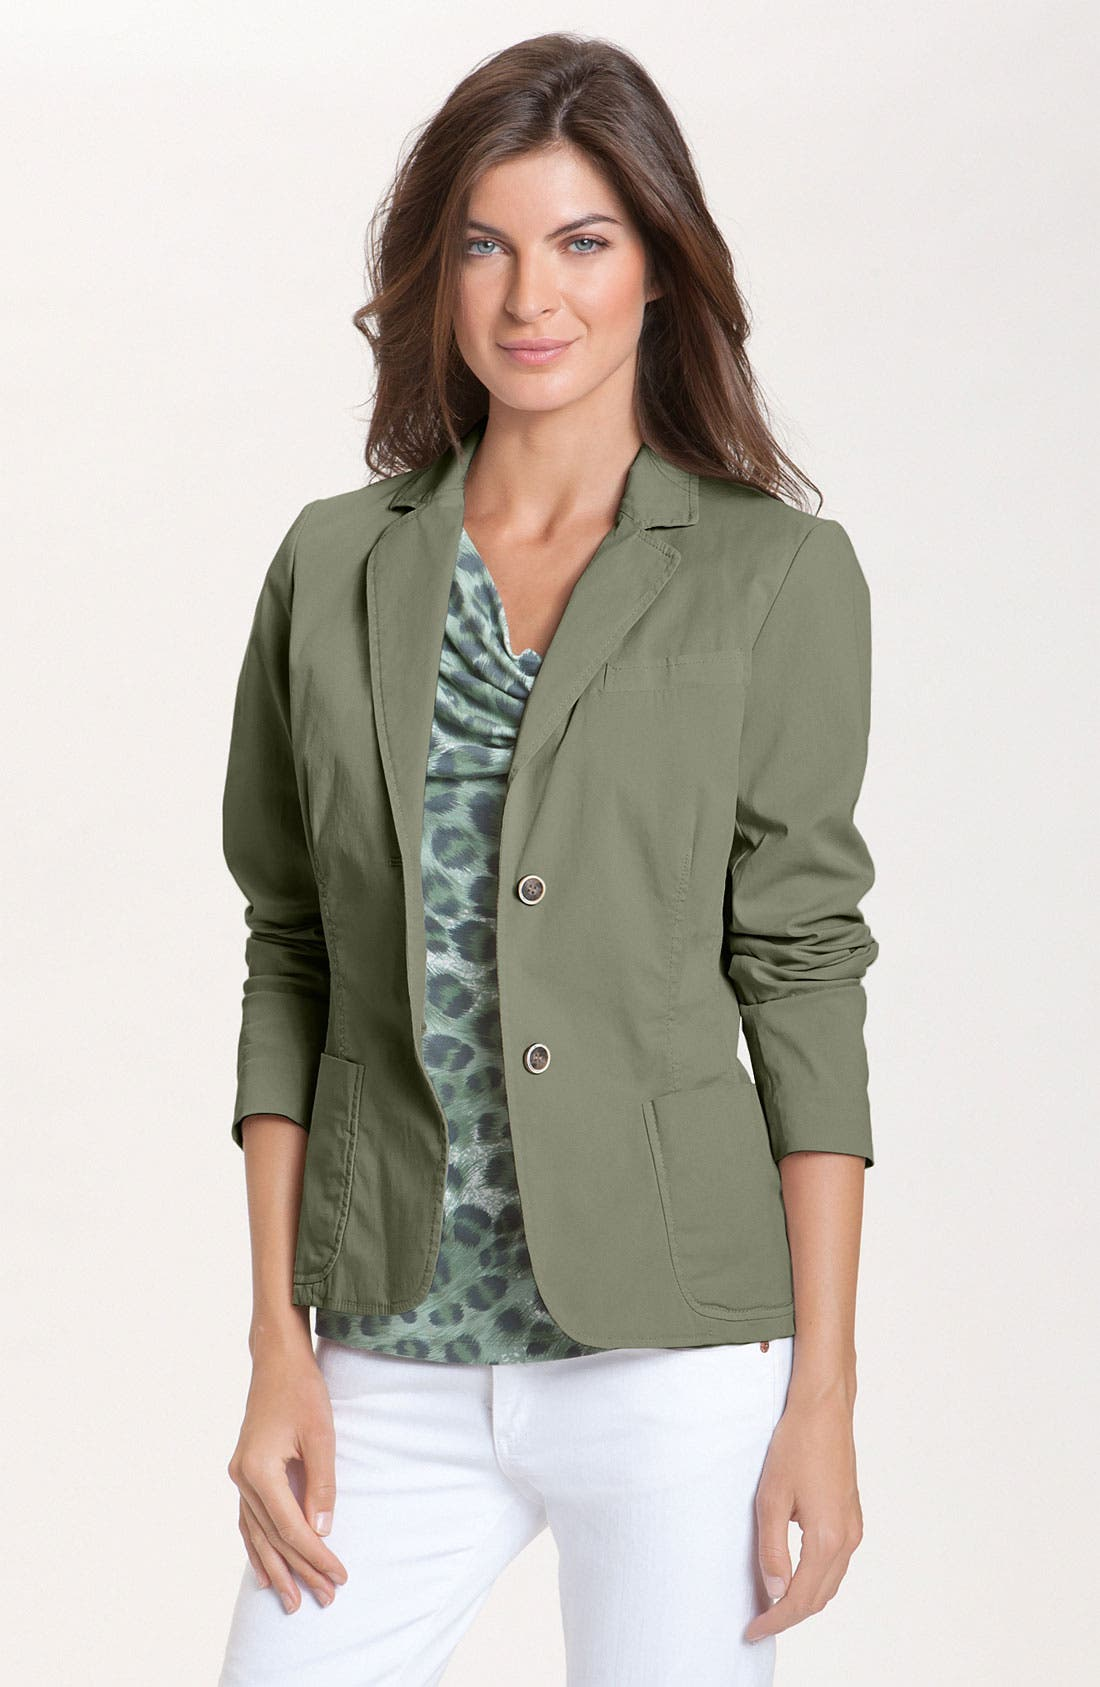 Alternate Image 1 Selected - Lafayette 148 New York 'Paolo' Stretch Twill Jacket